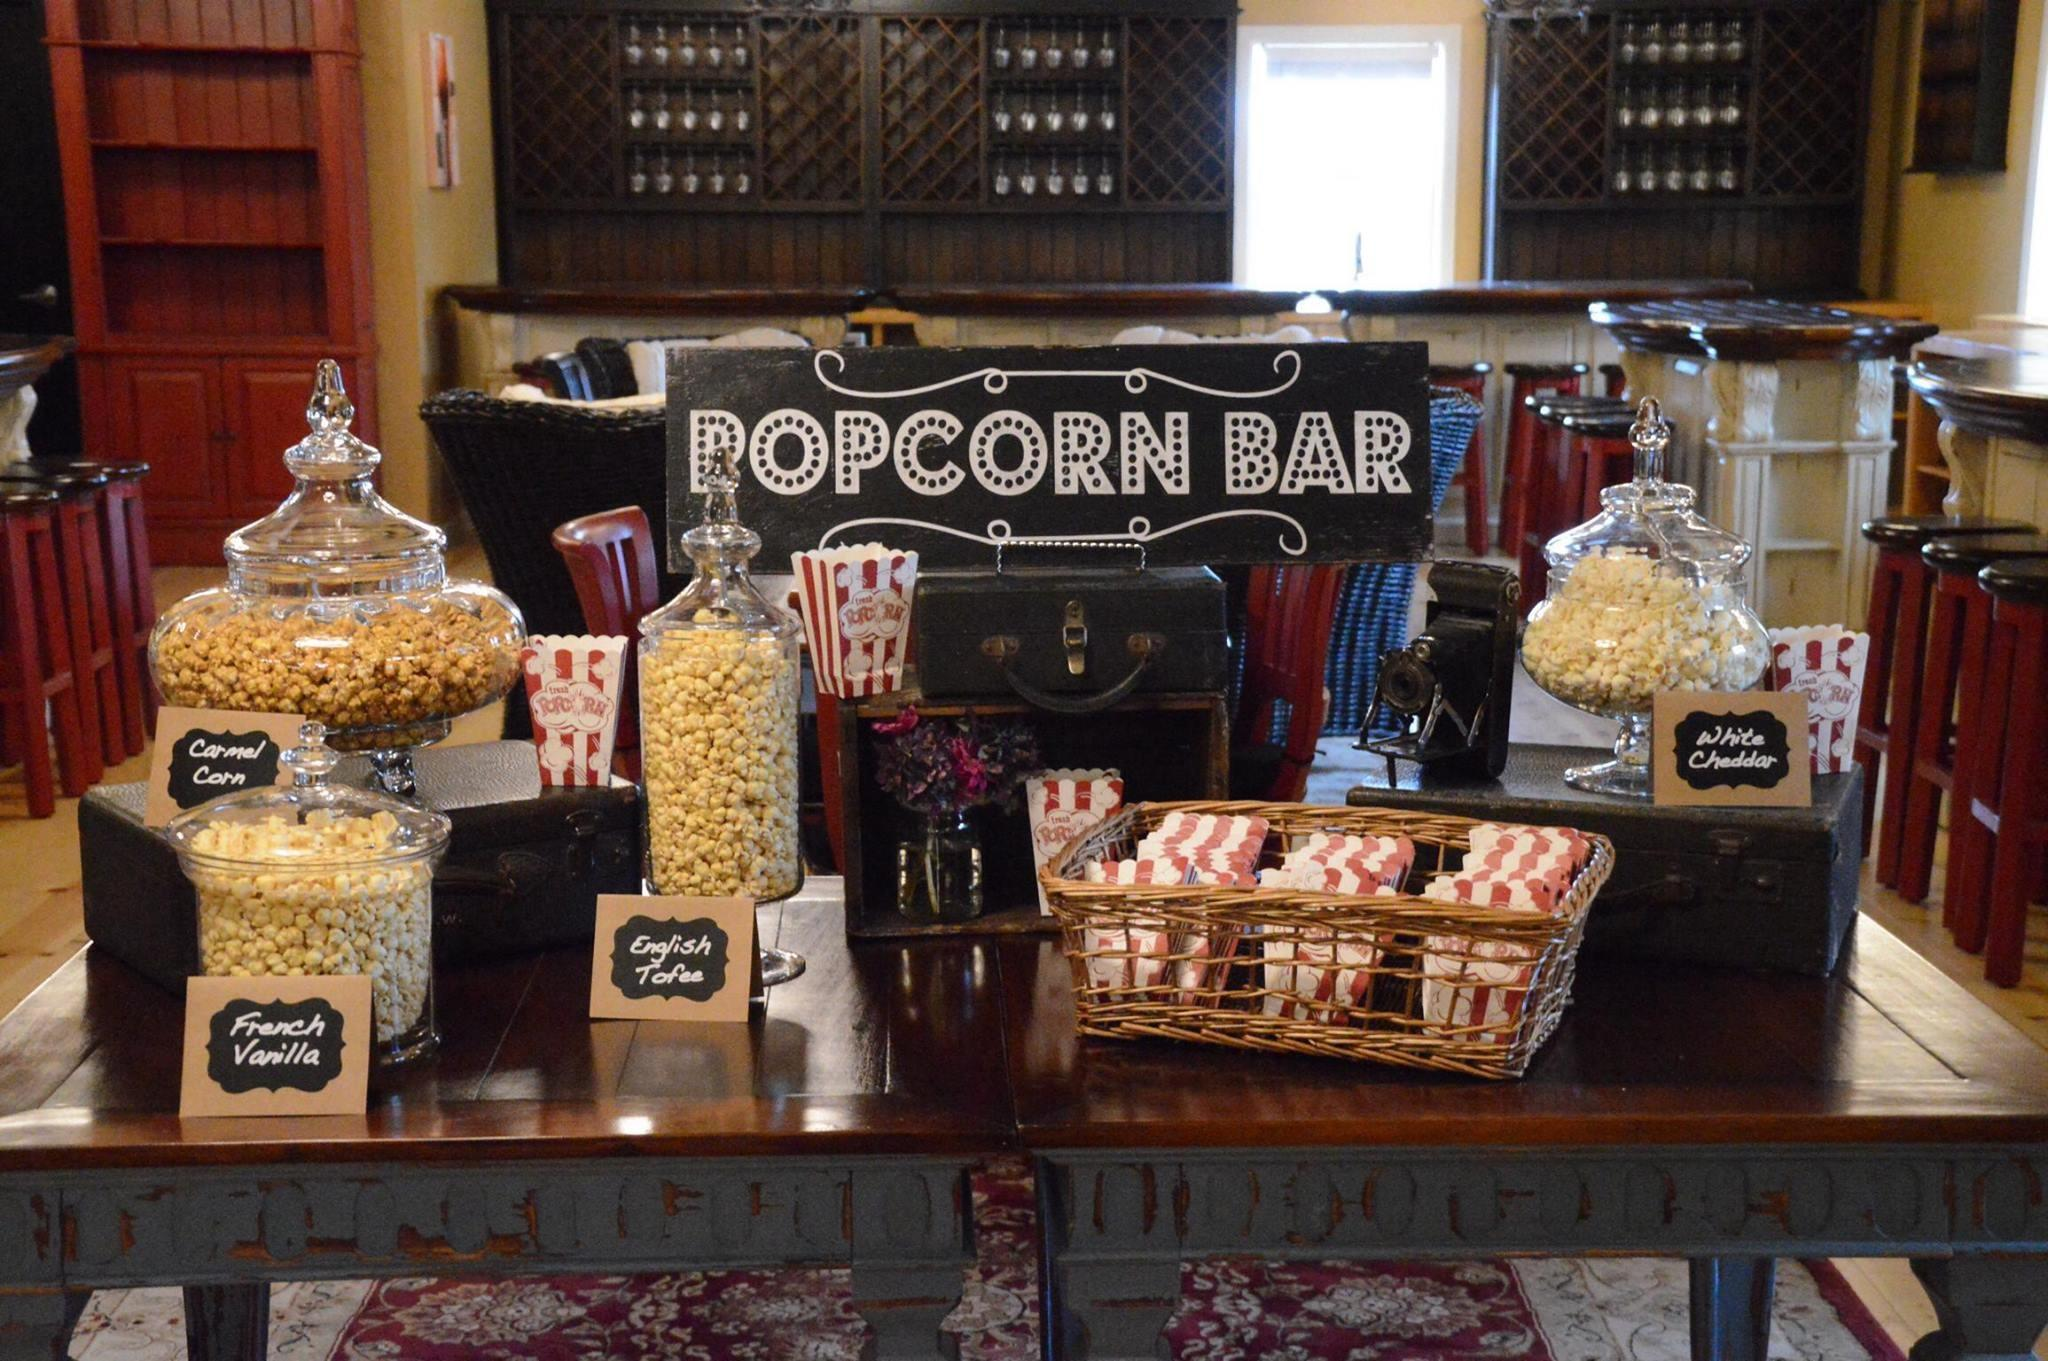 Popcorn Bar With JustPoppin.com Popcorn